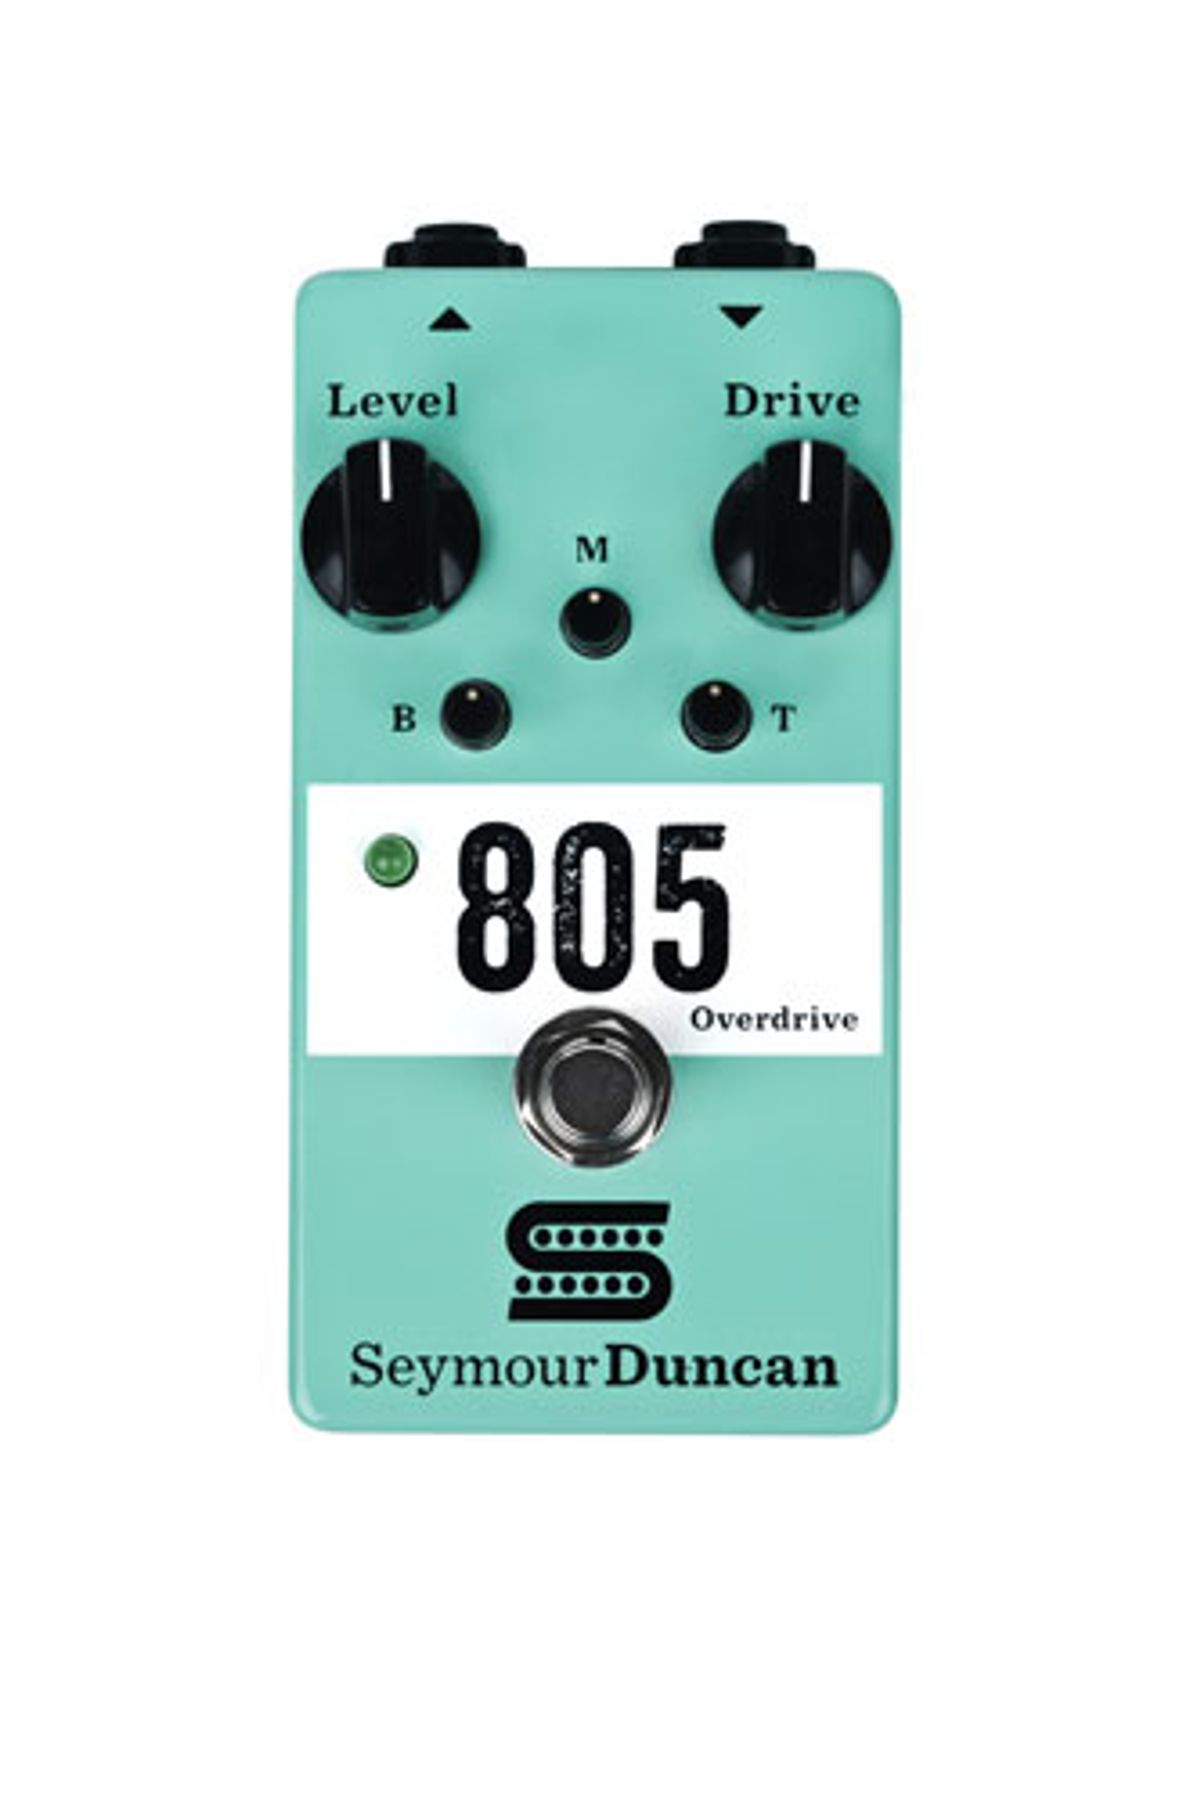 Seymour Duncan Unveils the 805 Overdrive Pedal